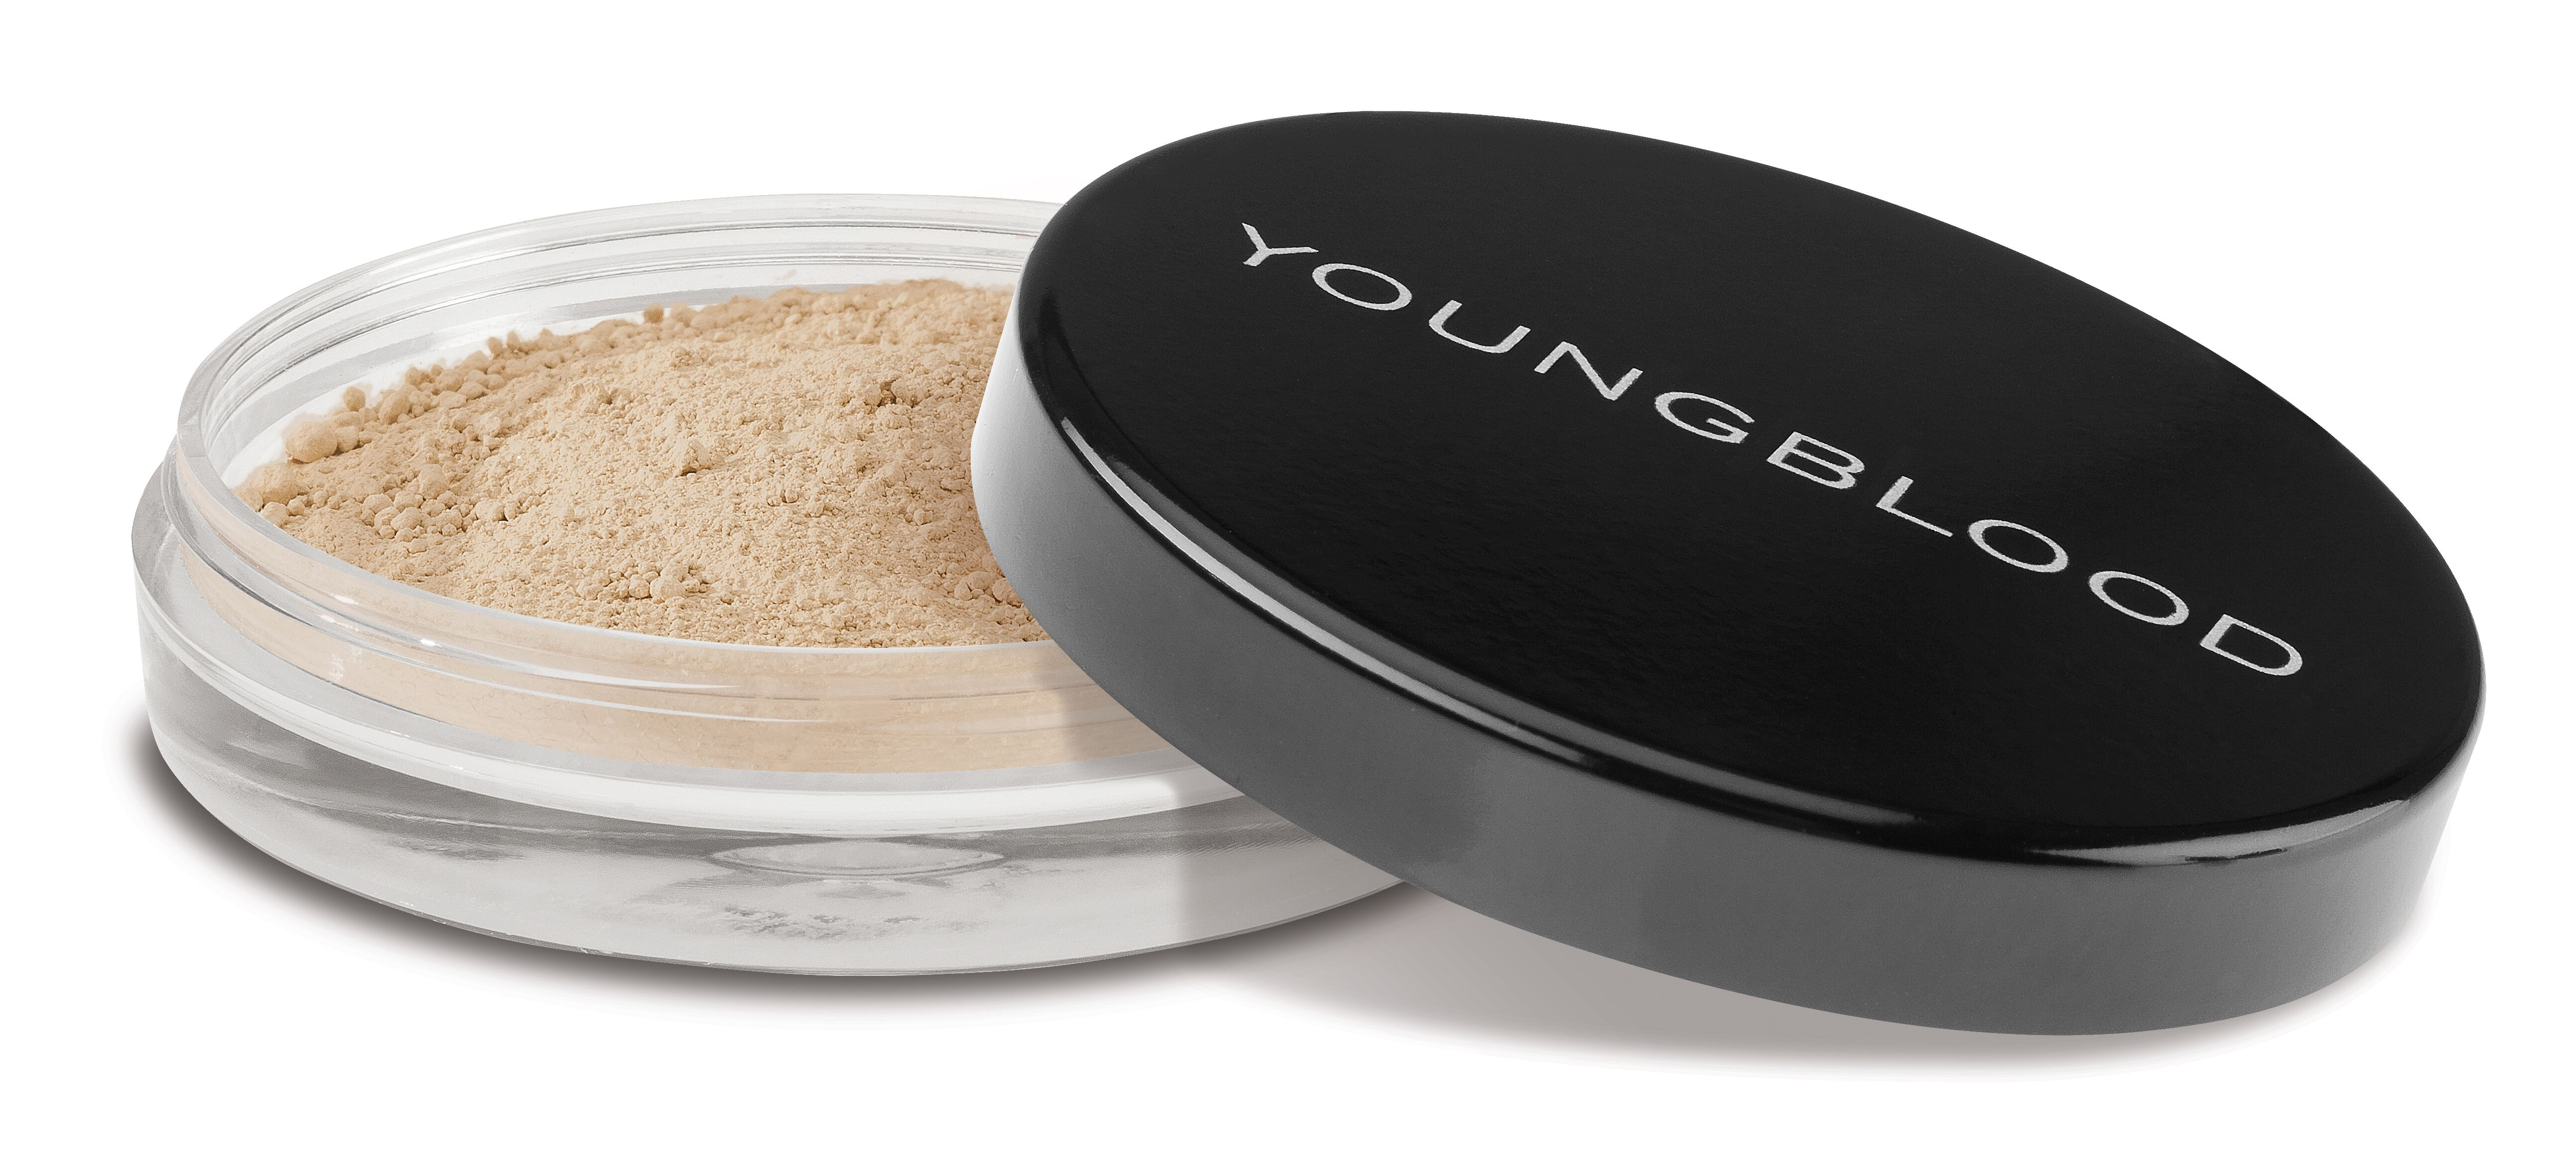 Youngblood natural loose mineral foundation, pearl